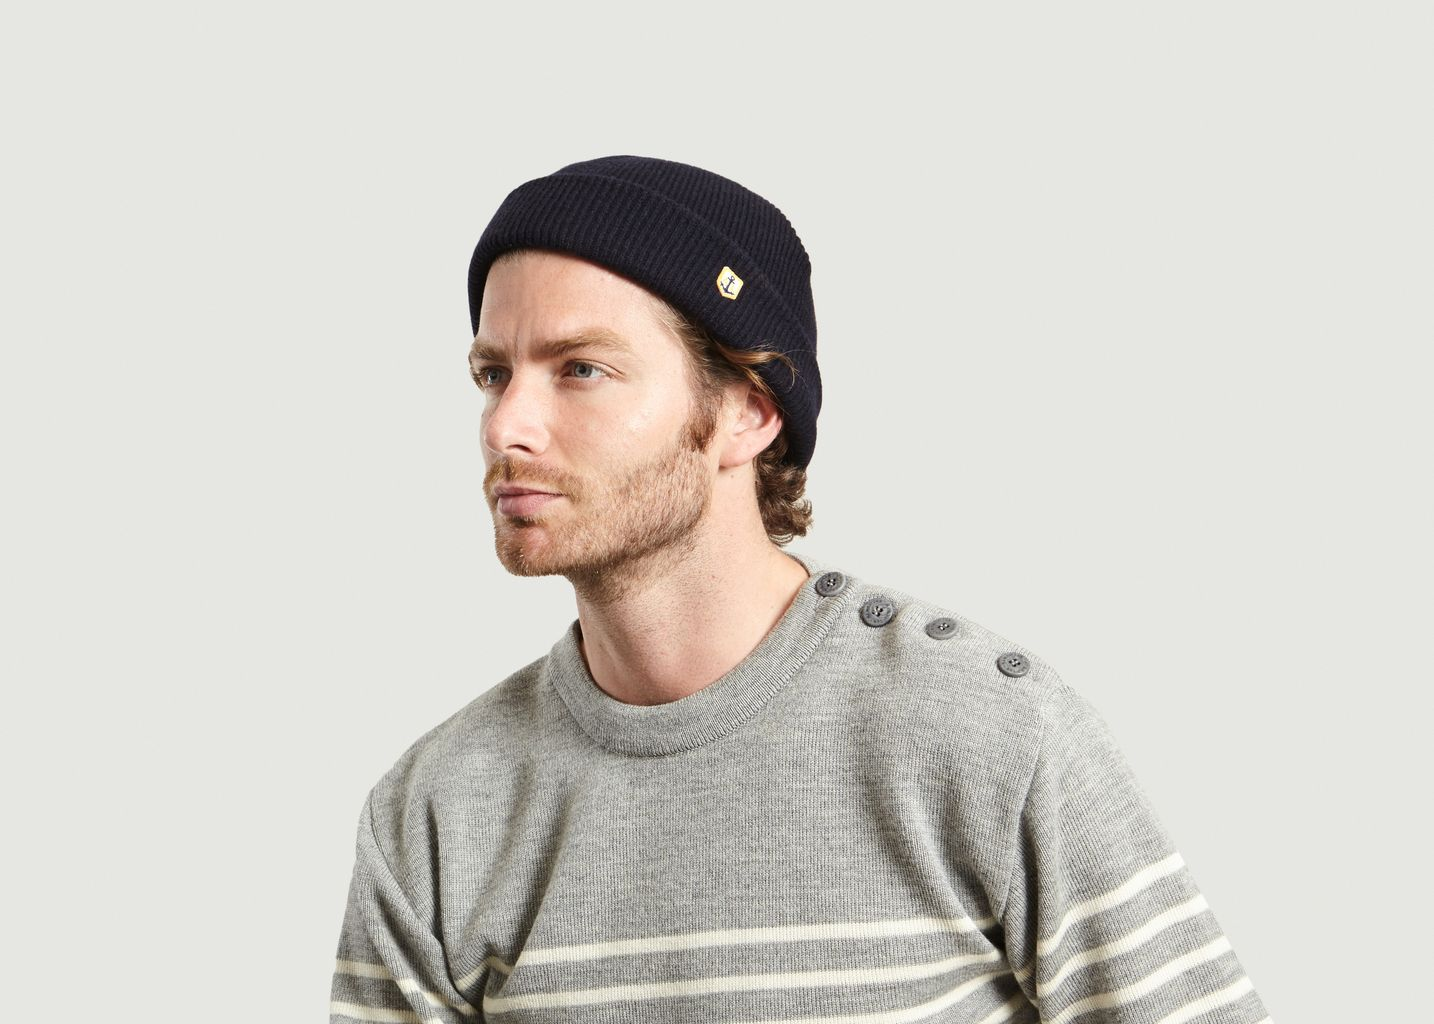 outlet online temperament shoes quality products Heritage Beanie